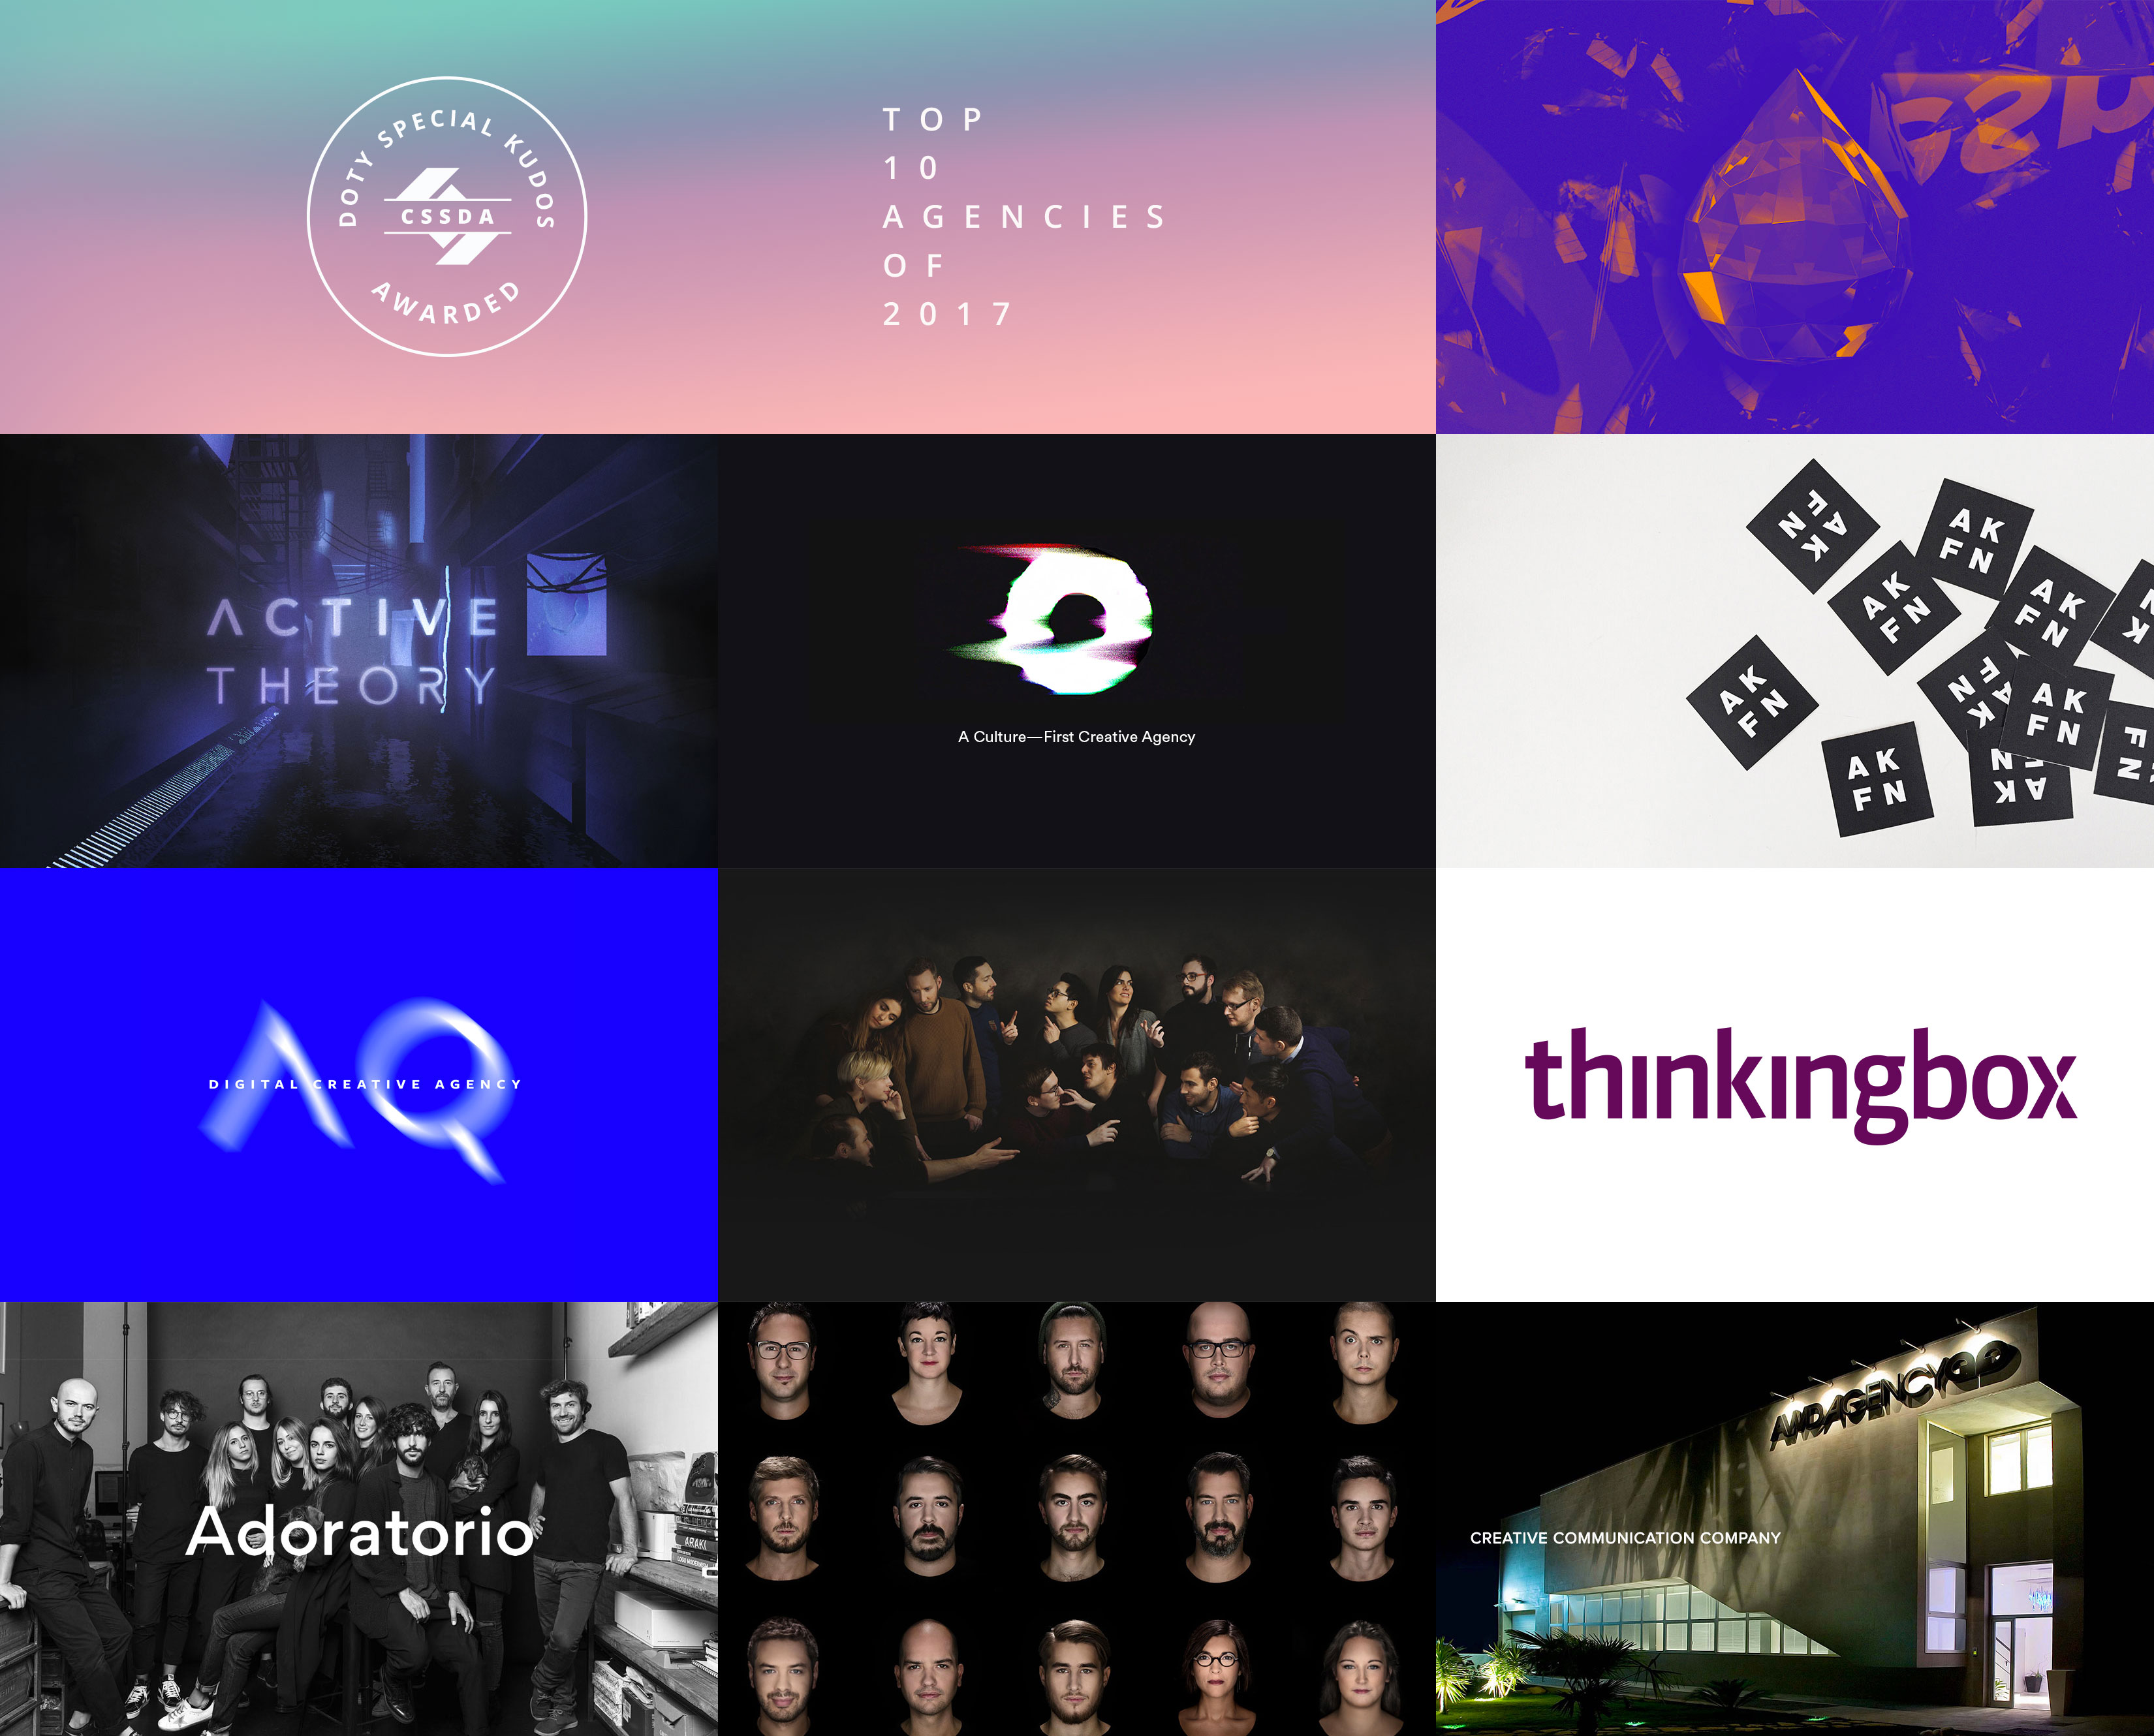 CSSDA DOTY 2017 - Top 10 Agencies